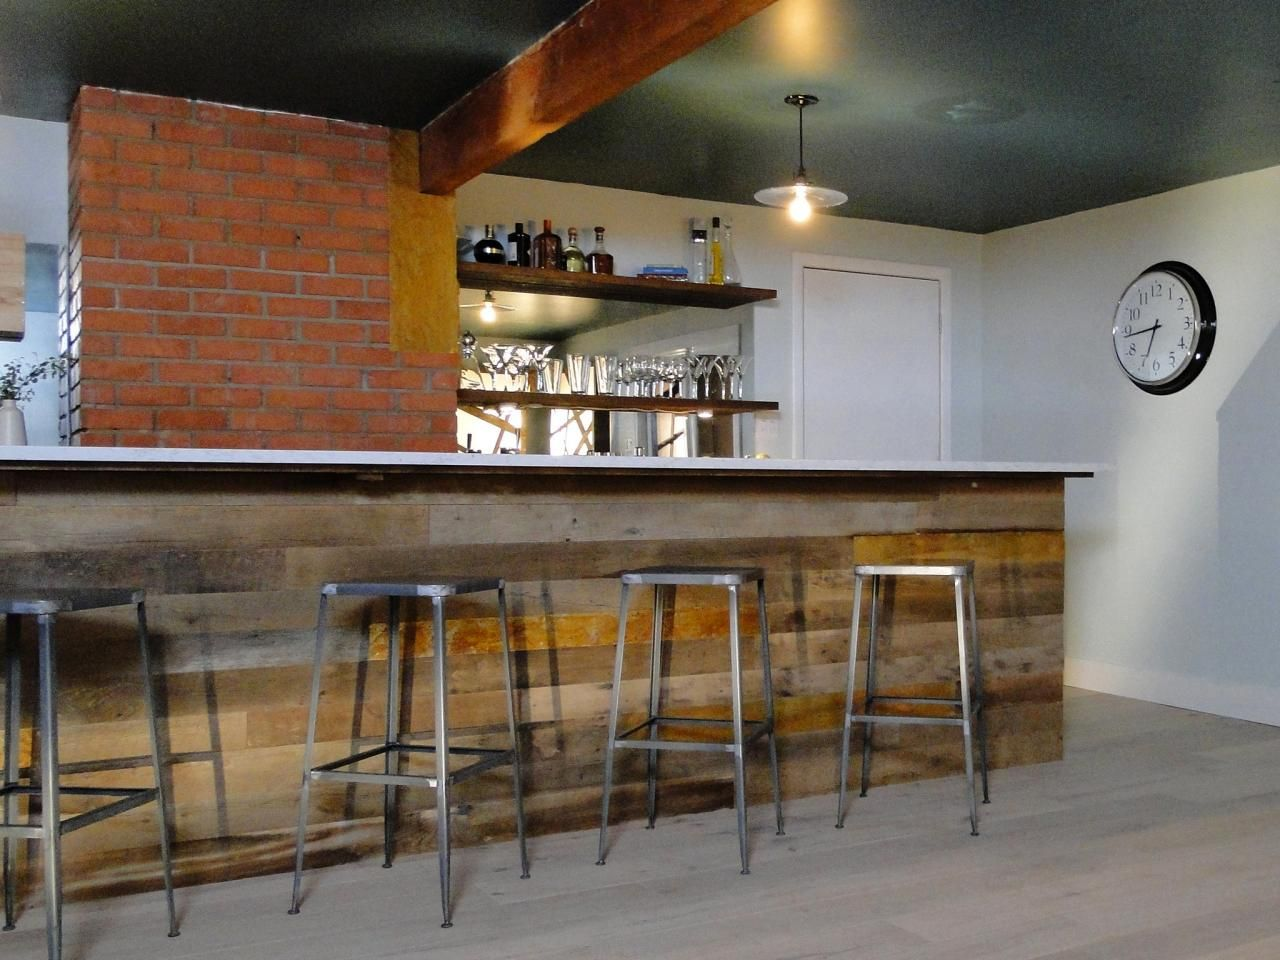 Marvelous Clever Basement Bar Ideas: Making Your Basement Bar Shine